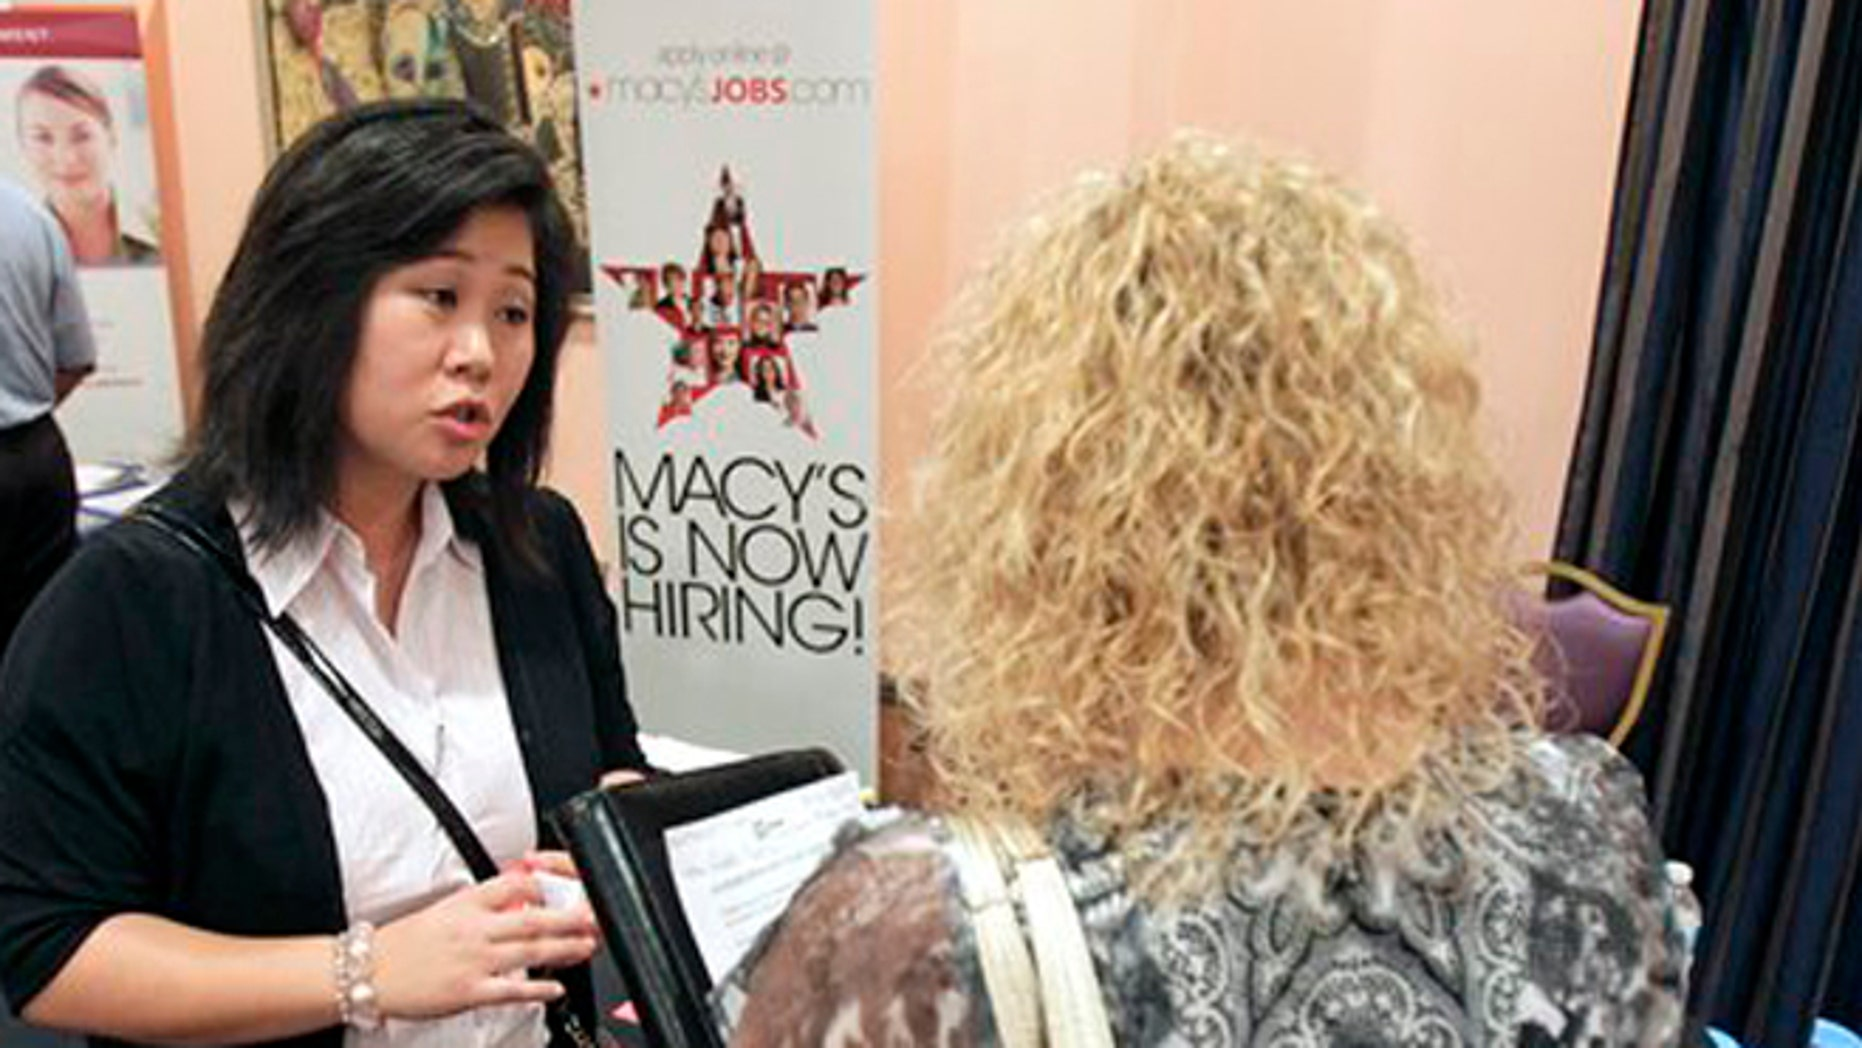 May 30, 2012:  Mi-Ran Park-Wong, of Macy's, speaks to a job applicant during a career expo sponsored by Jobs Direct USA in Orlando, Fla.